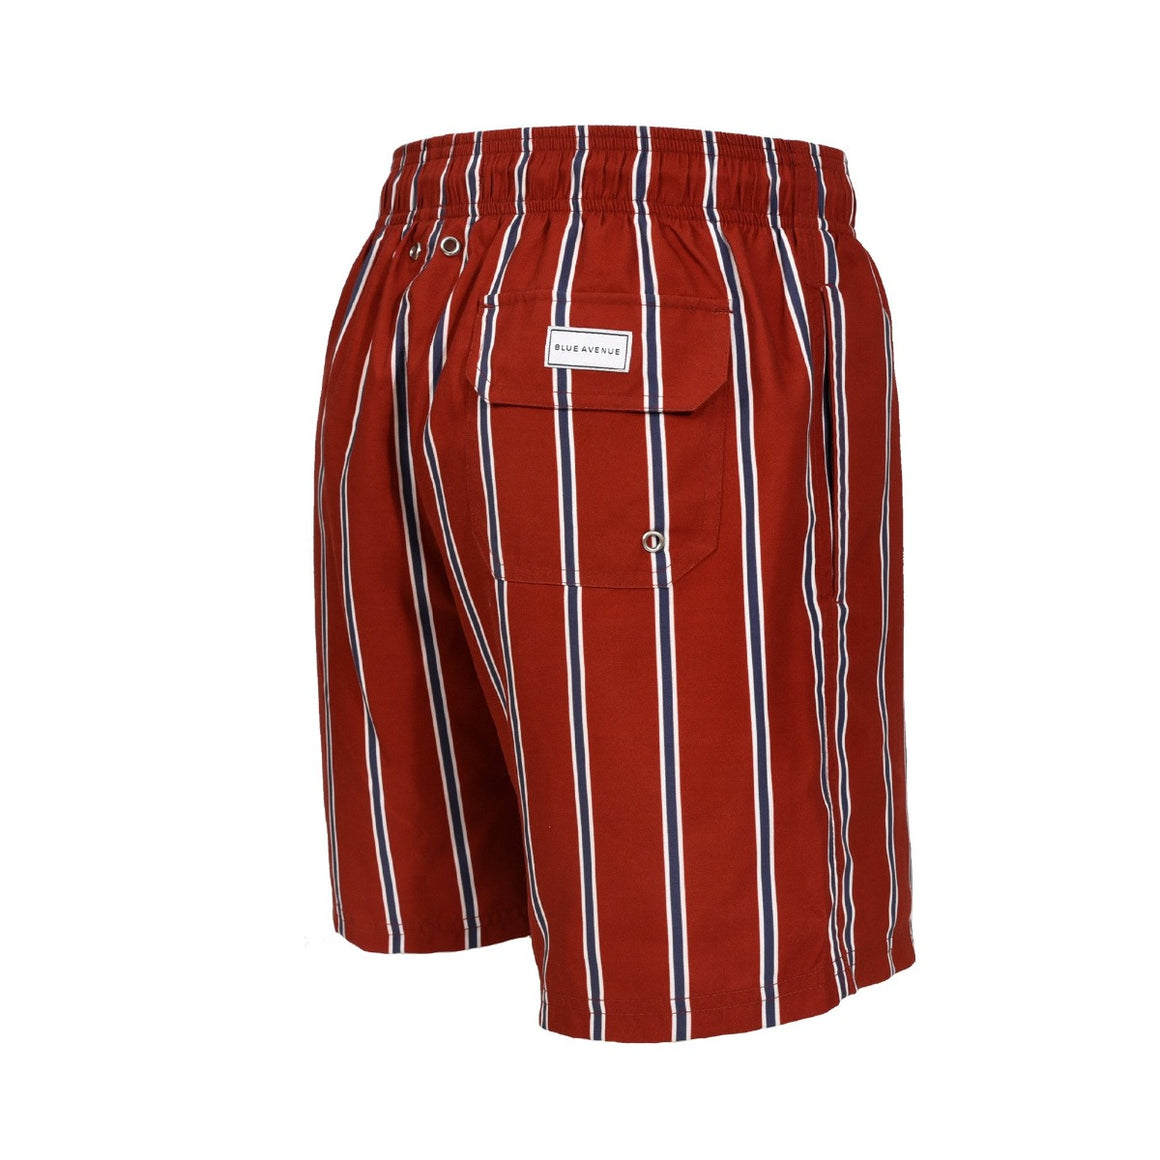 Classic Authentic II Positano striped red swim shorts - Blue Avenue